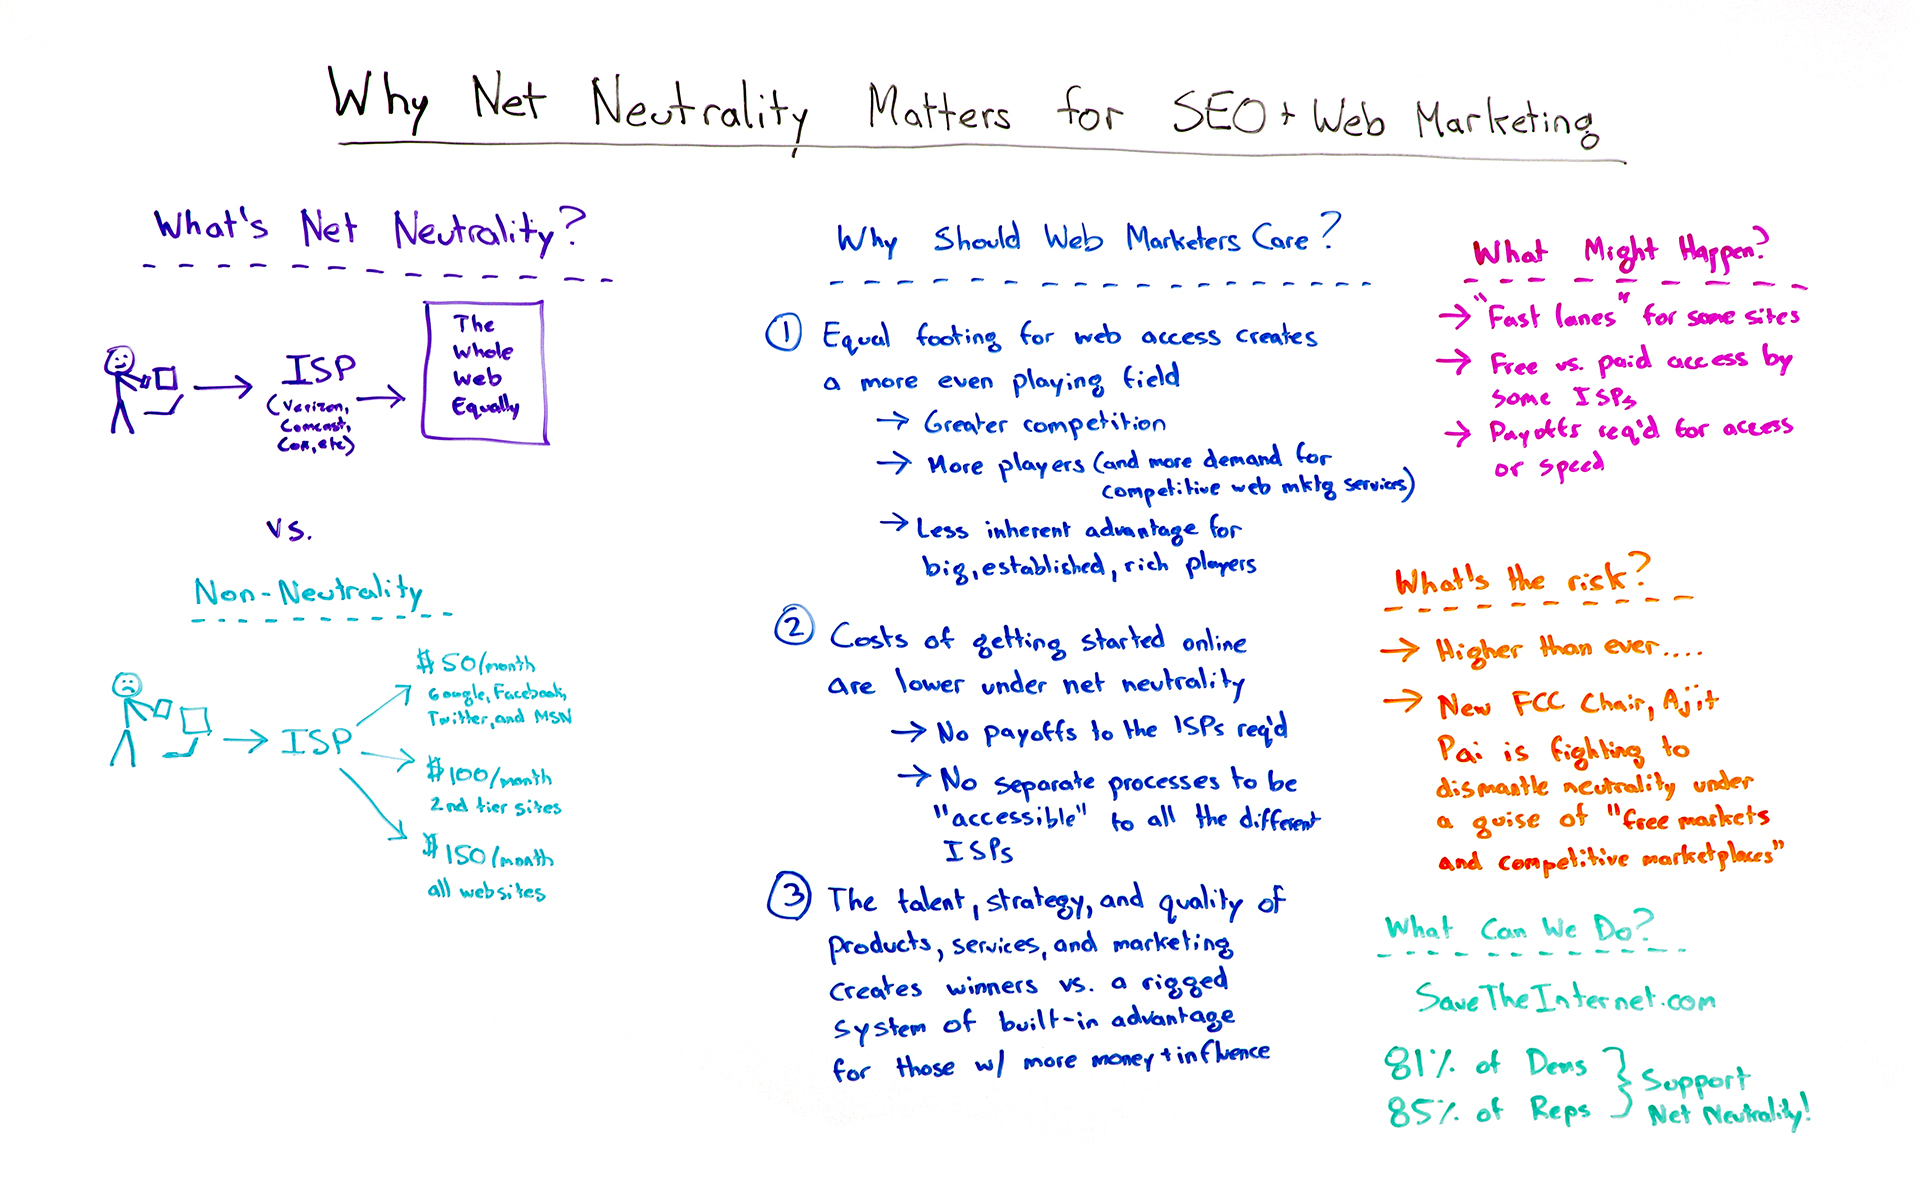 Net Neutrality and SEO